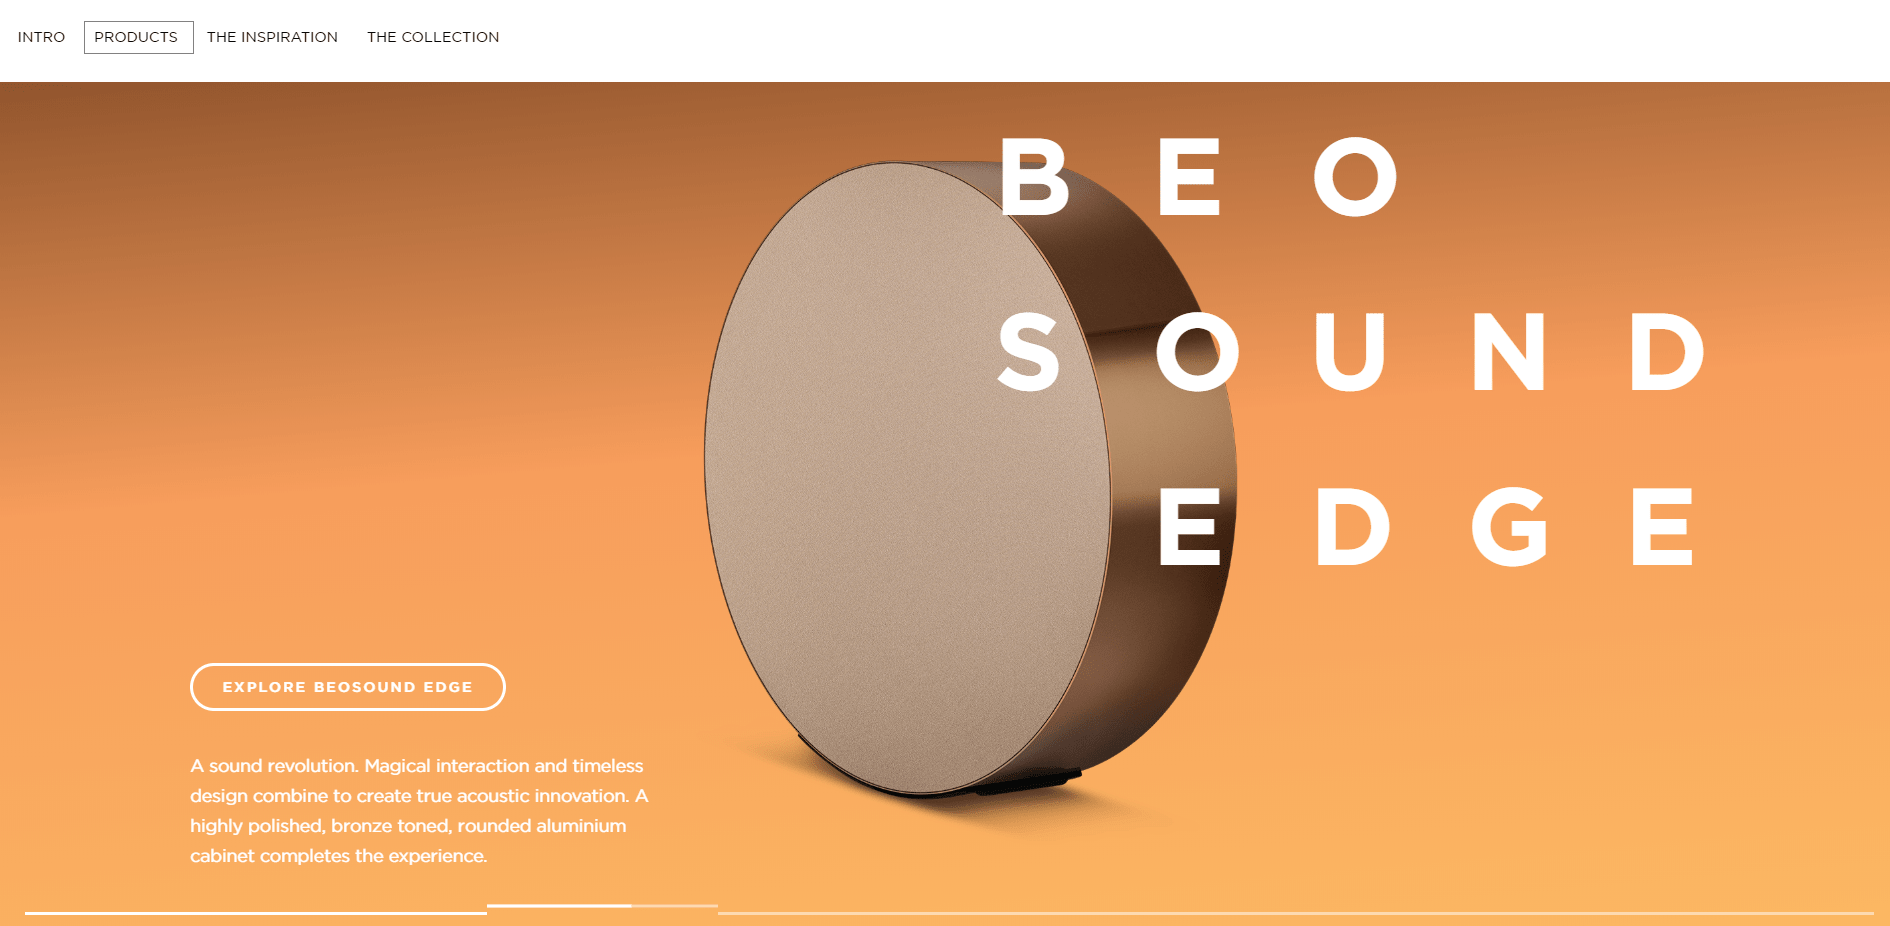 Beige color palette in website